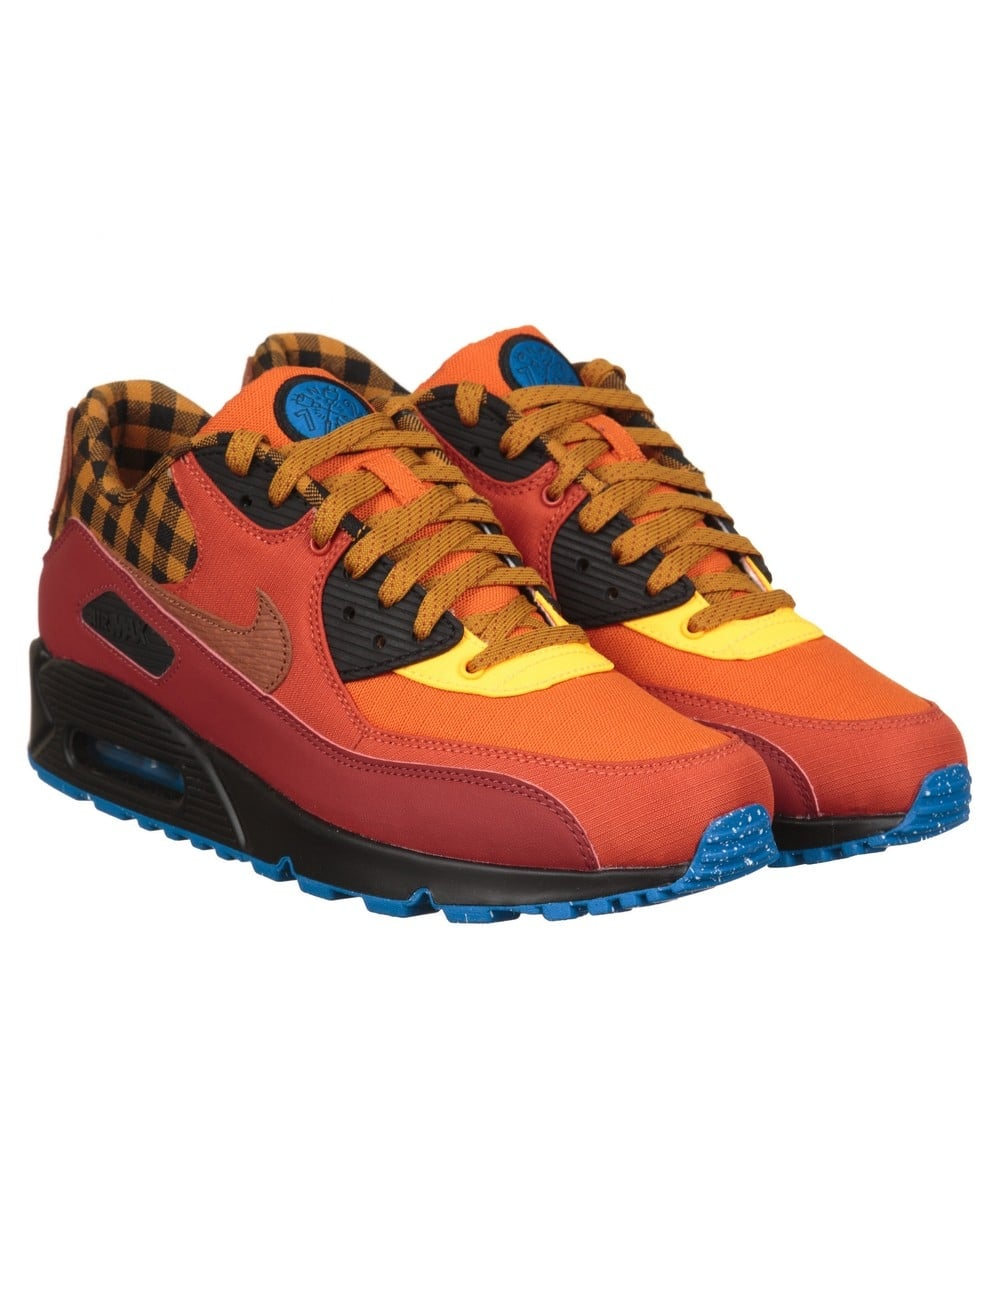 nike-air-max-90-premium-shoes-dark-cayenne-gold-campfire-pack-p15633-62867_zoom